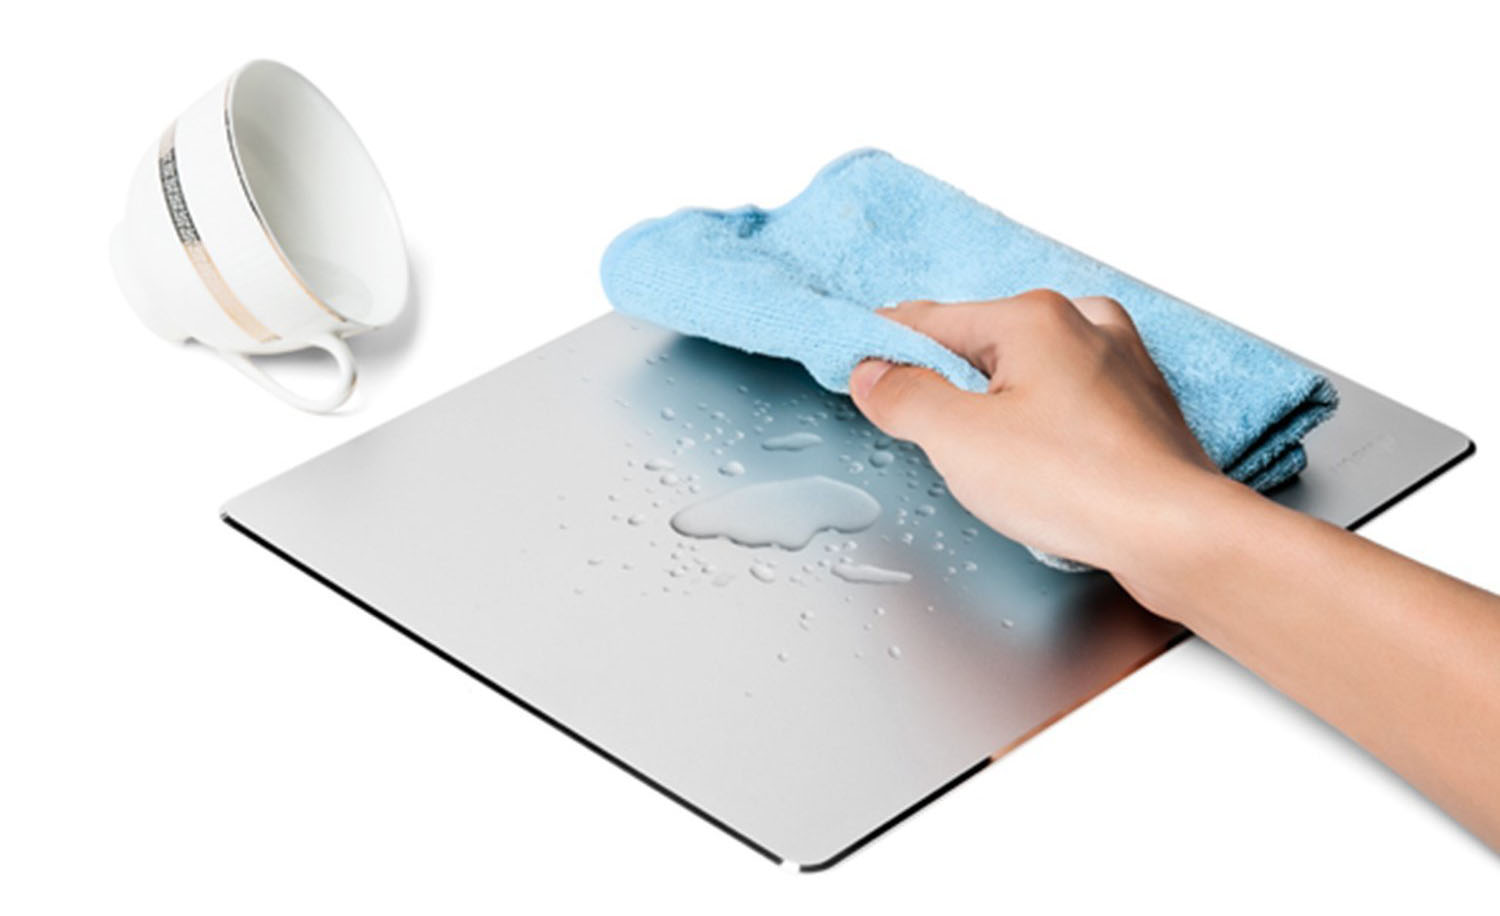 Review: AmazingWorks Aluminum Gaming Mouse Pad